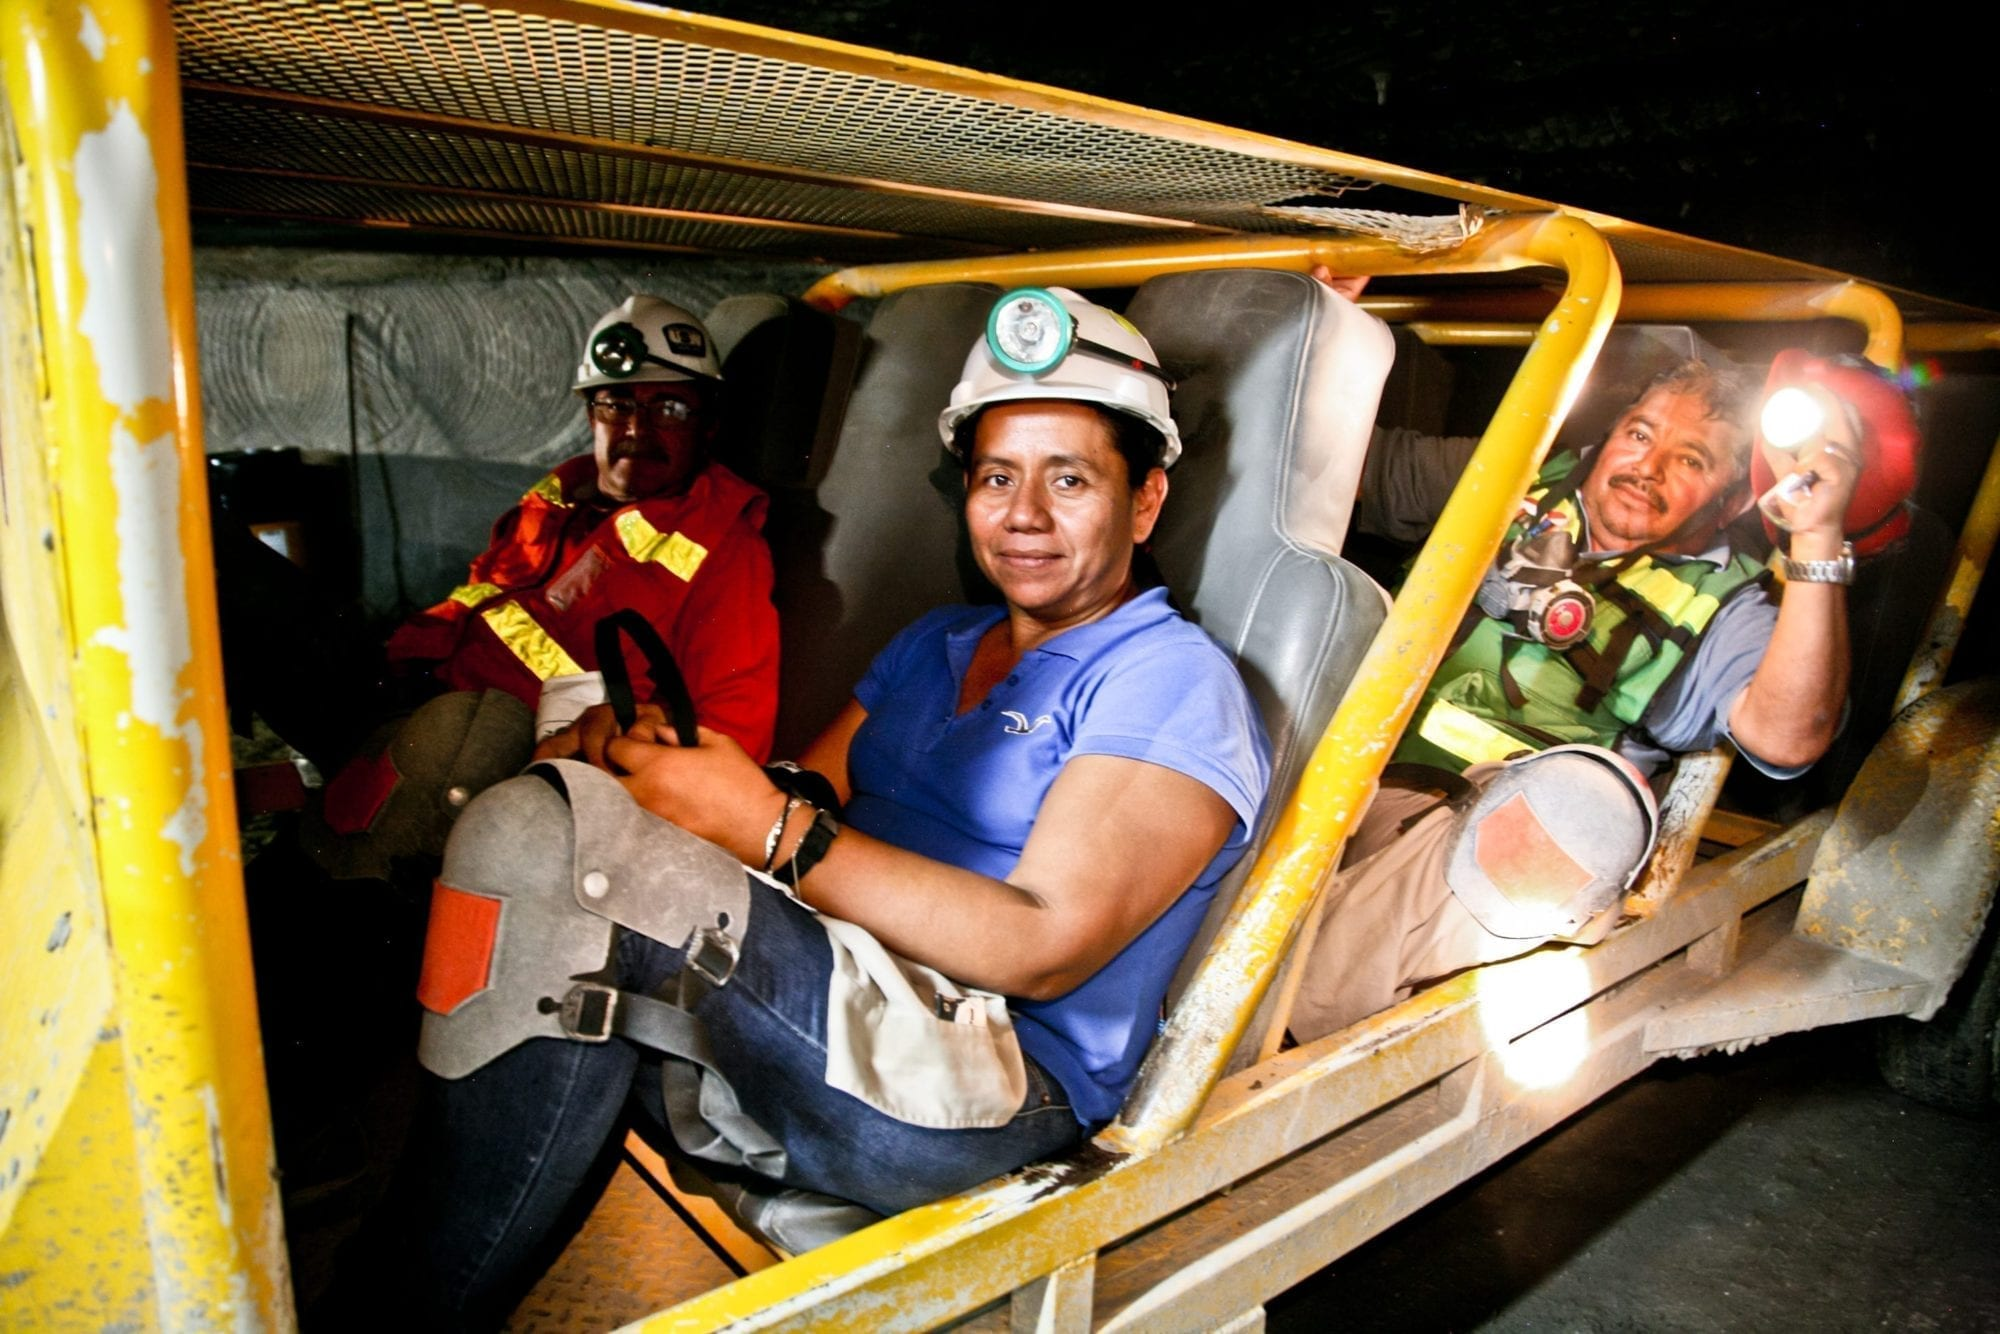 Ruth Rivera and her co-workers travel through the mines in a cart that transports all personnel.